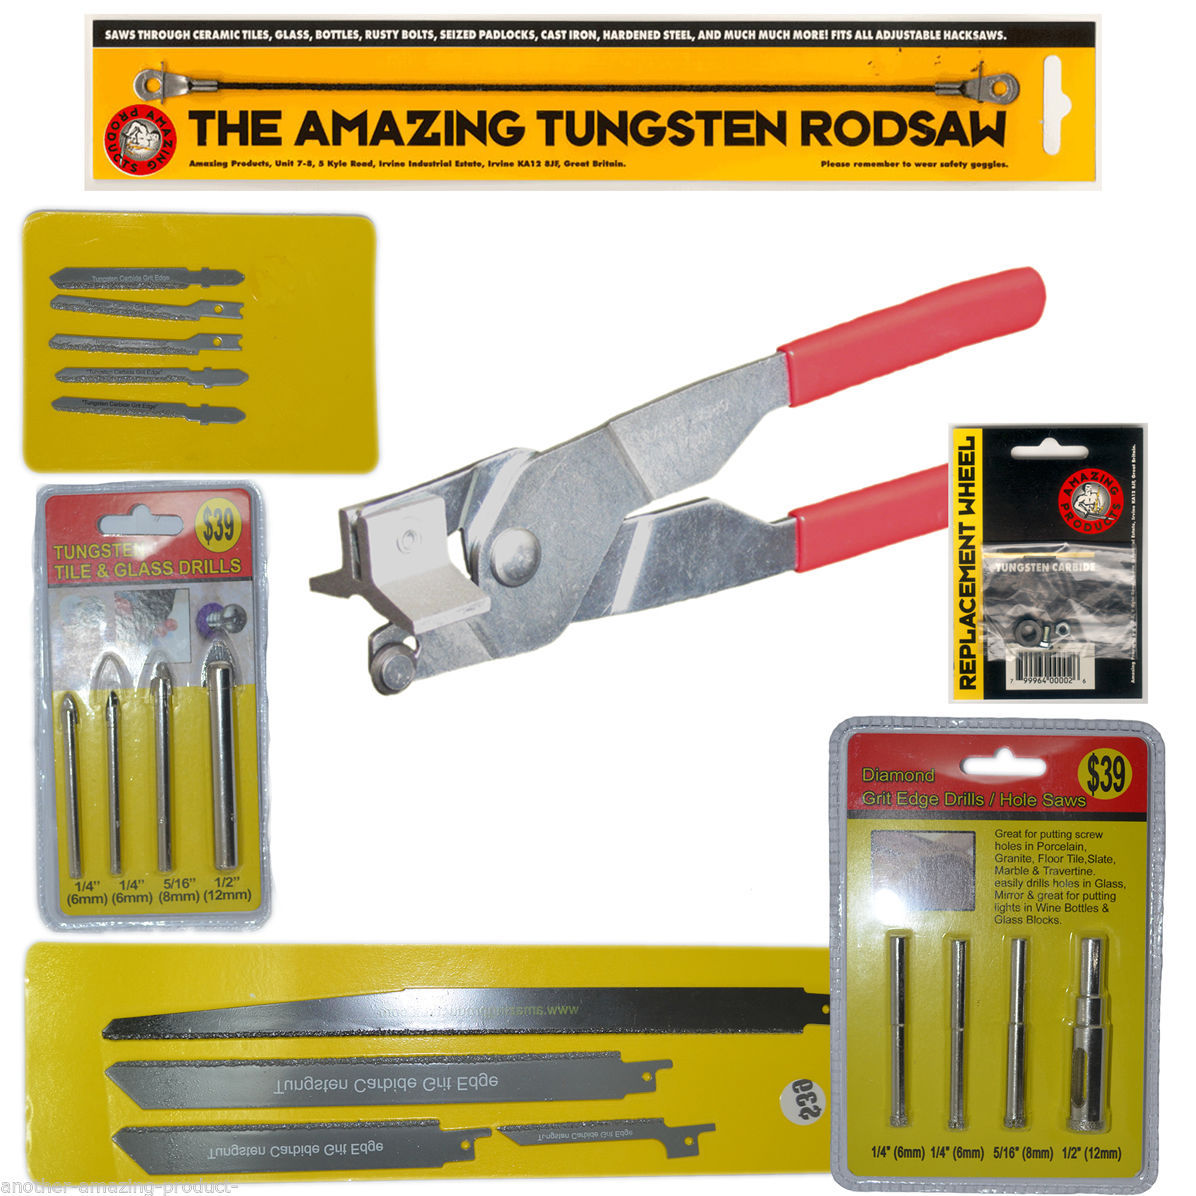 21 piece Tile and Glass Cutting drilling and boring Kit Ceramic Porcelain Marble - $223.47